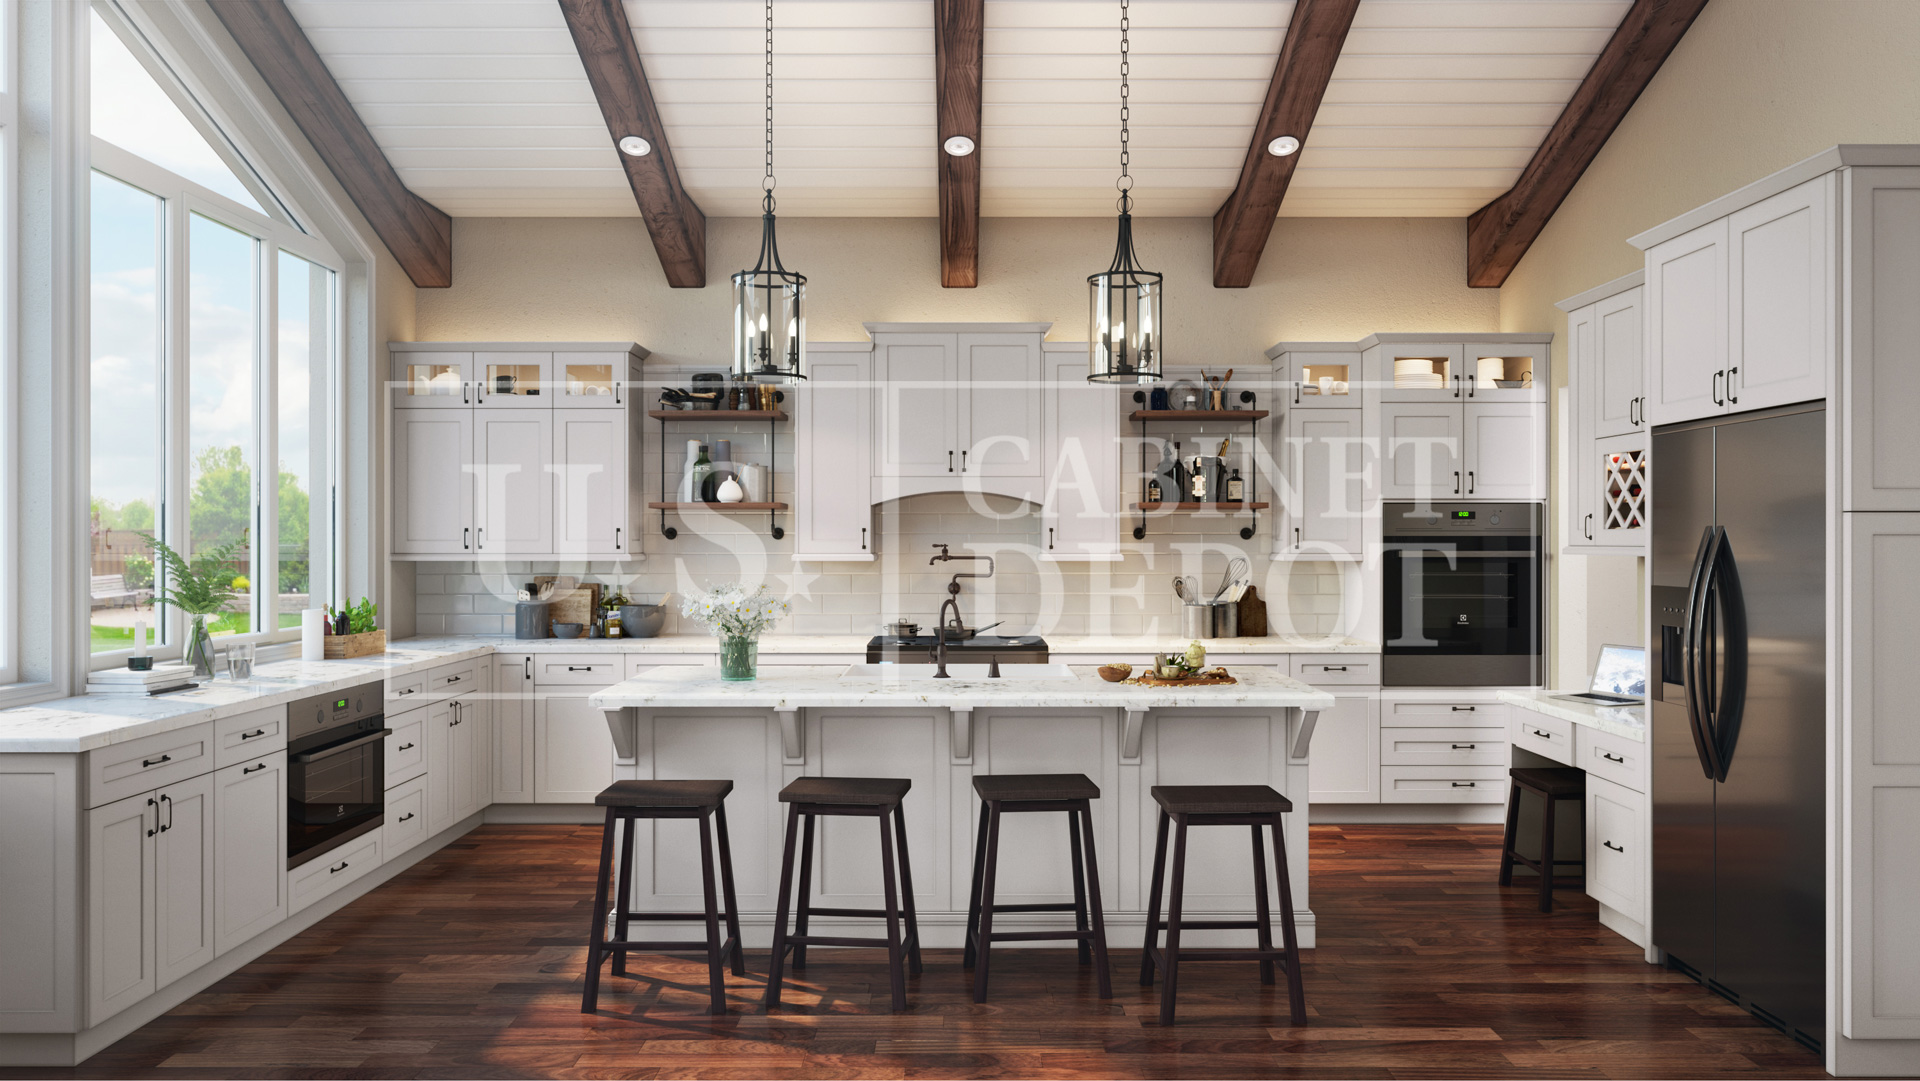 There Are Many Important Features To Consider When Deciding Whether To Use RTA  Cabinetry For Your Project.